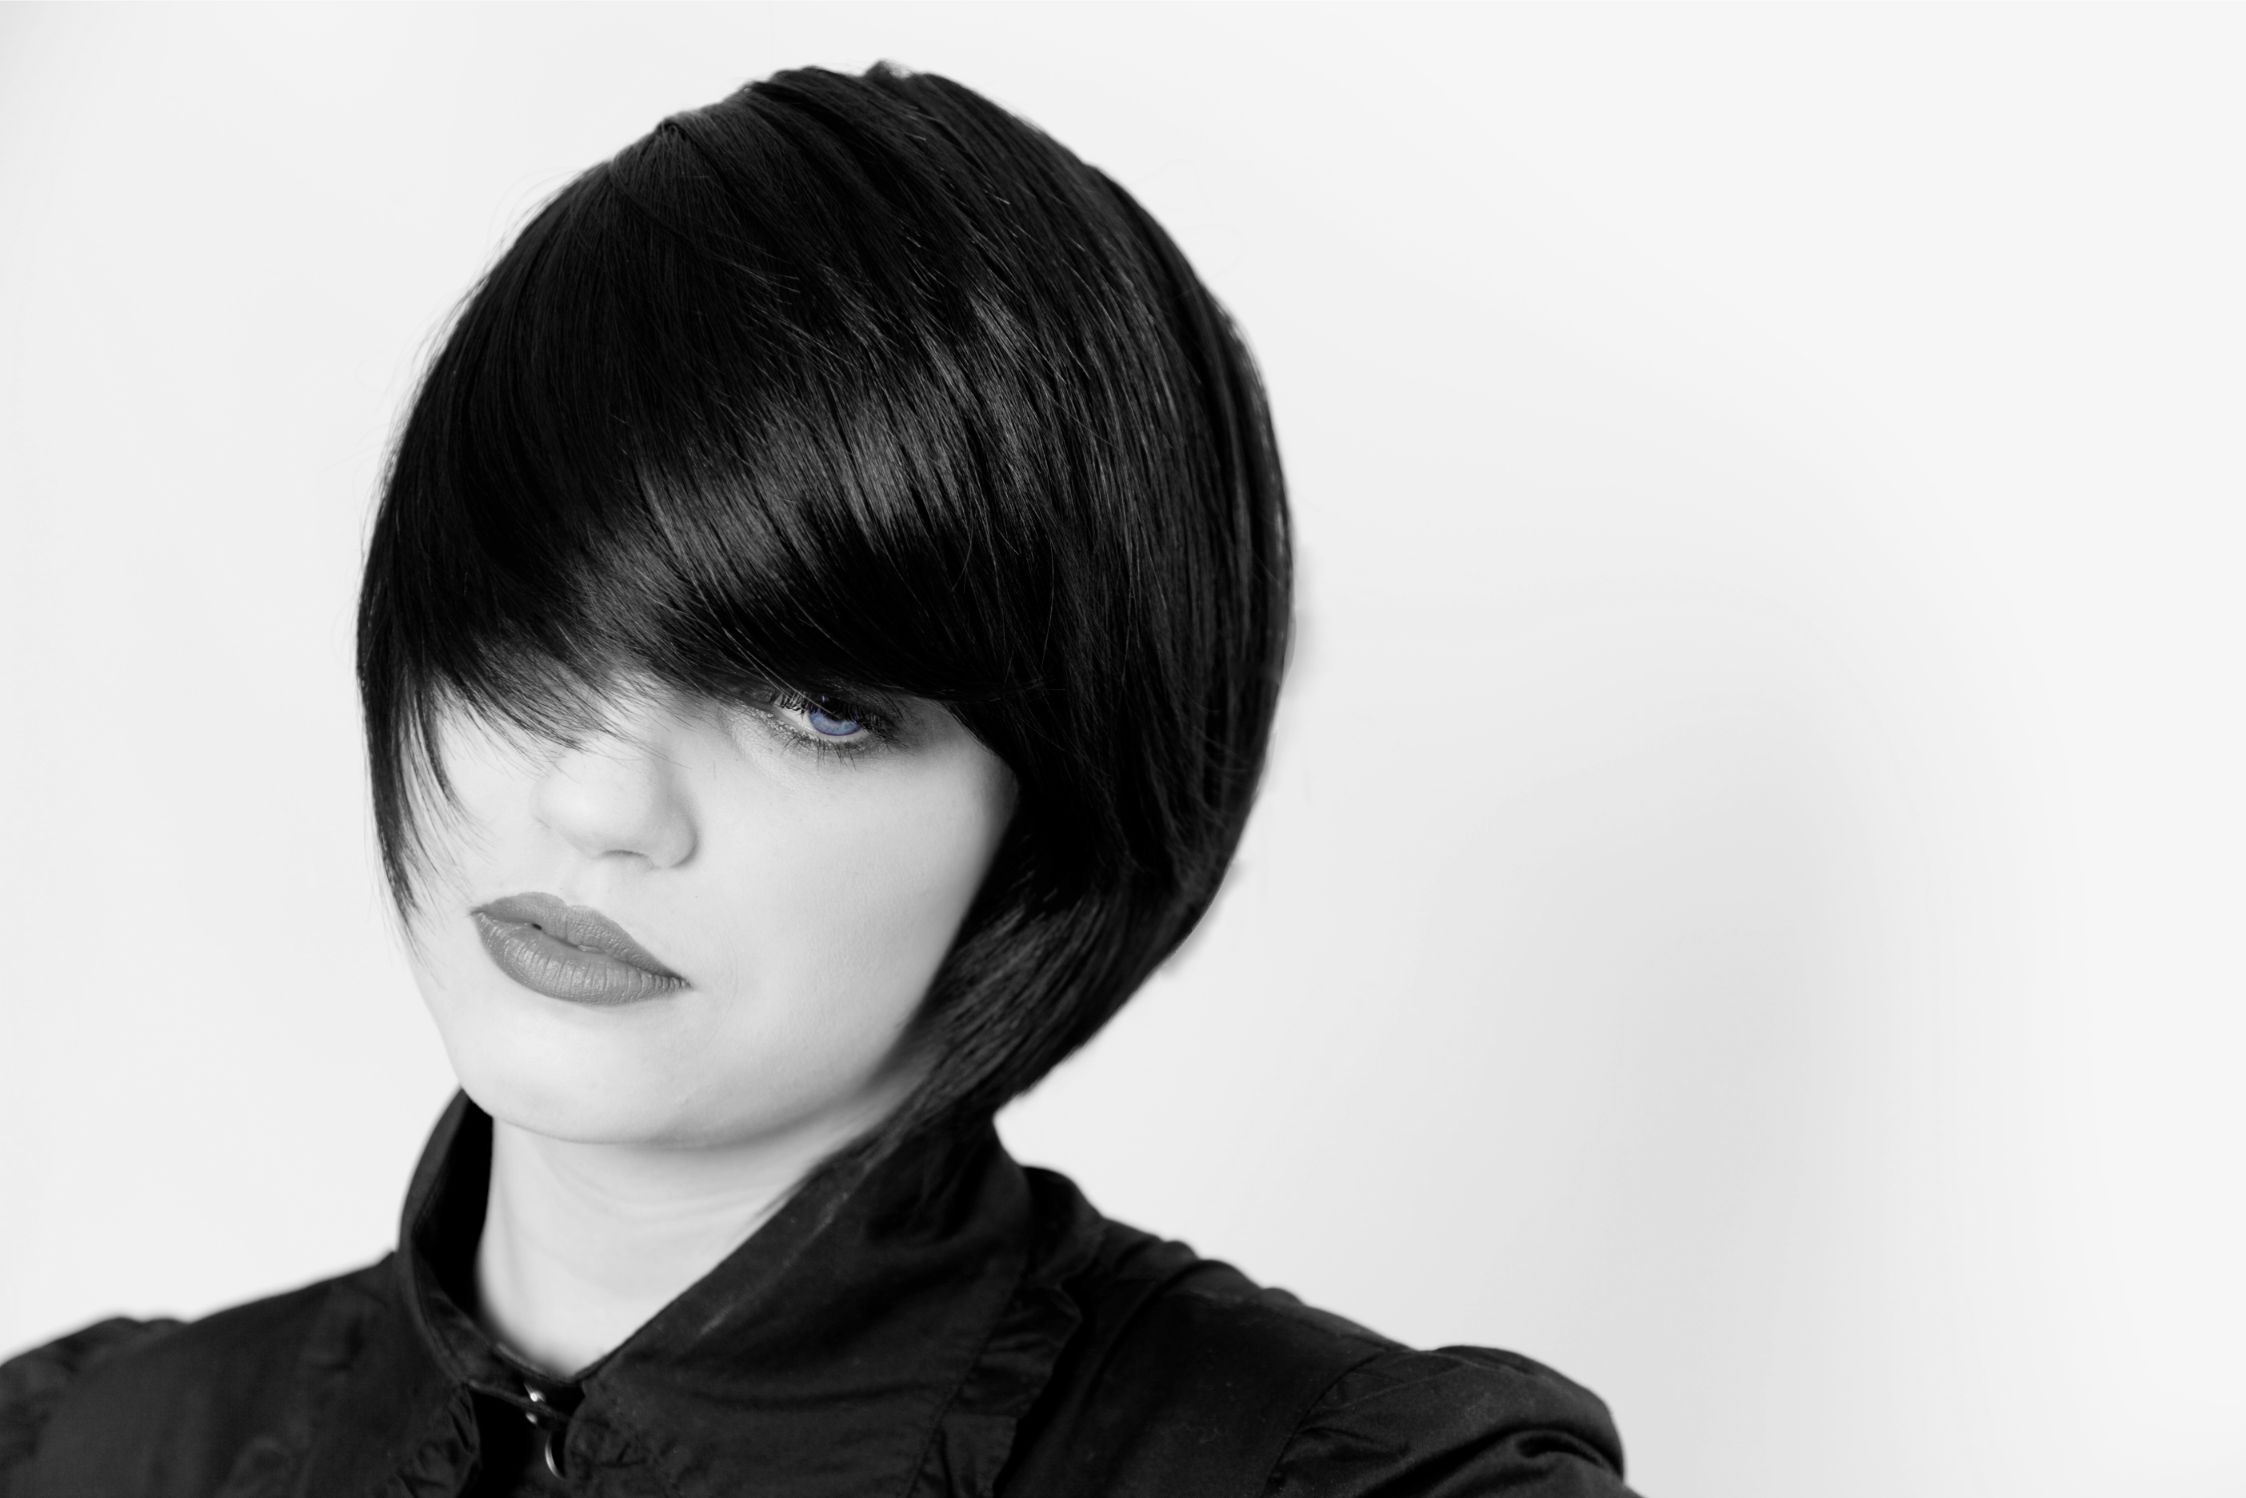 woman with short straight hair